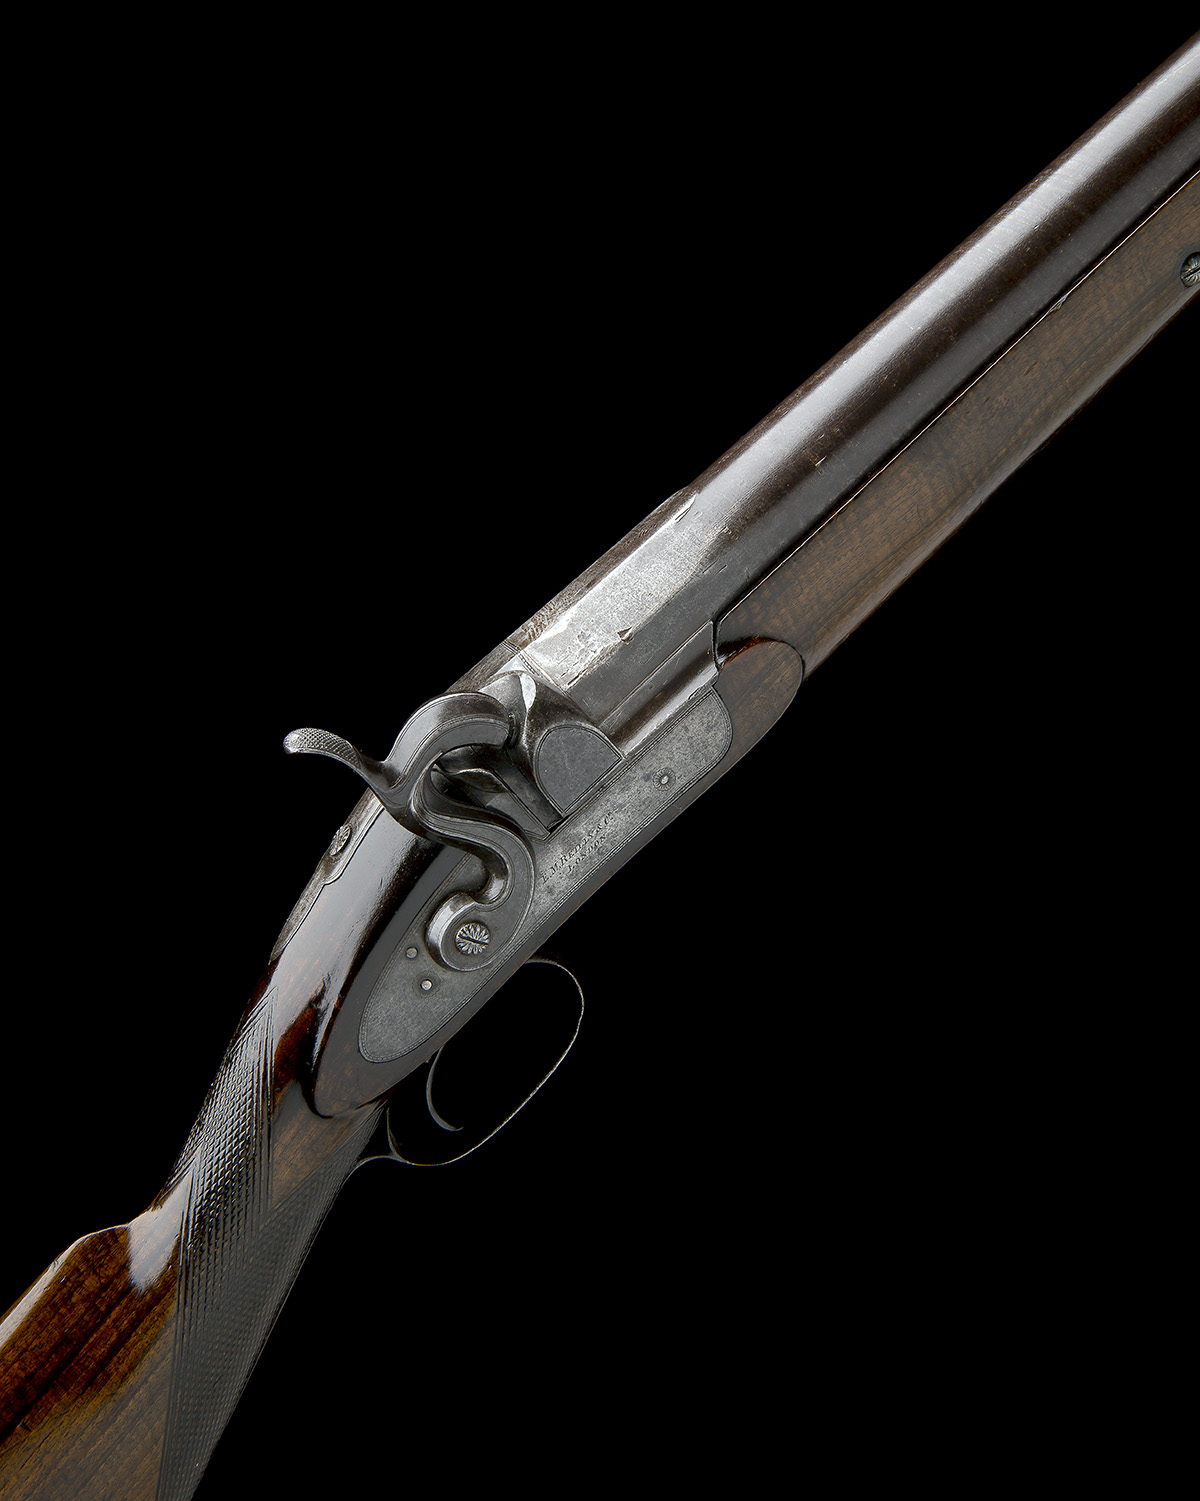 E.M. REILLY & CO., LONDON A 1in. PERCUSSION SINGLE-BARRELLED FOWLING-PIECE, no visible serial